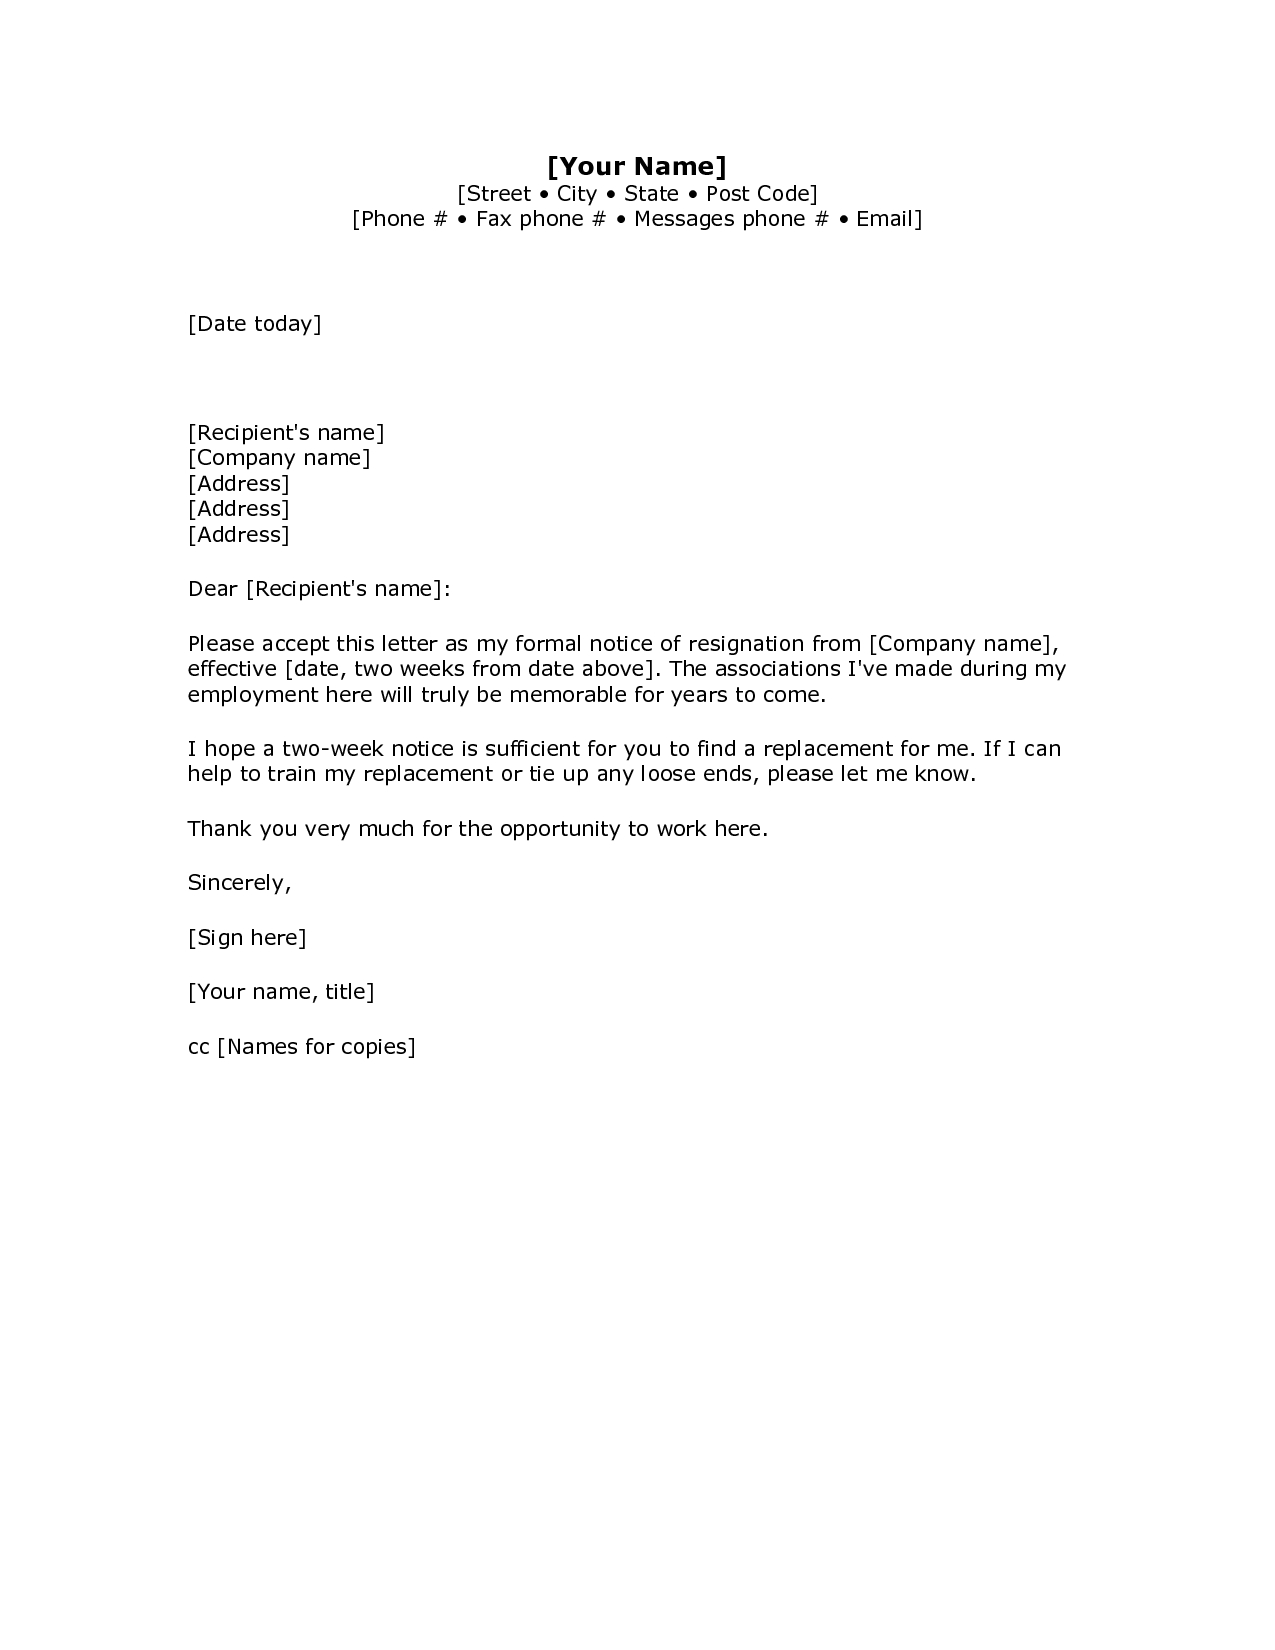 Letter Of Resignation Teacher Template - 2 Weeks Notice Letter Resignation Letter Week Notice Words Hdwriting